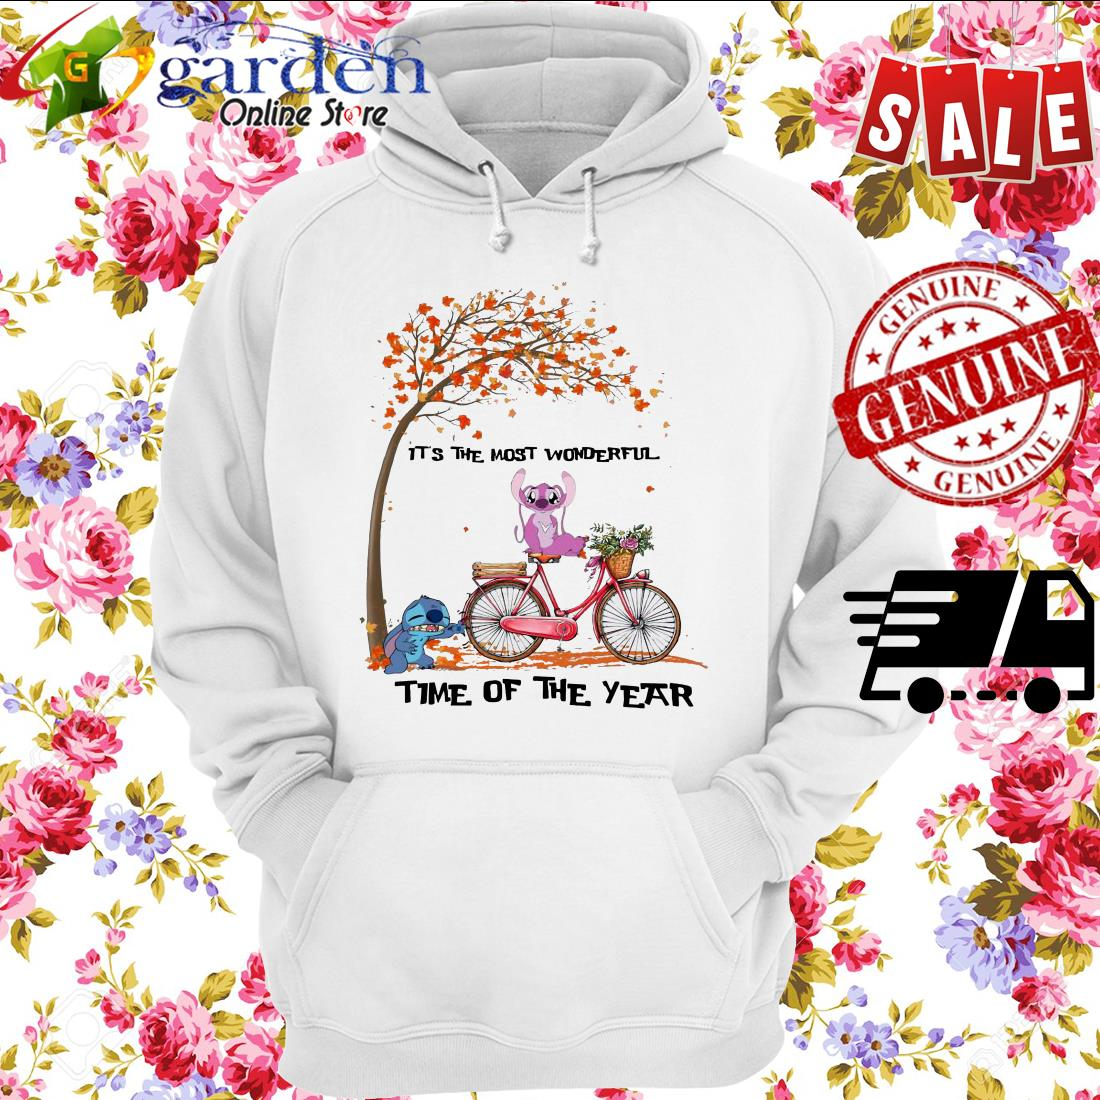 Stitch and angel it's the most wonderful time of the year hoodie